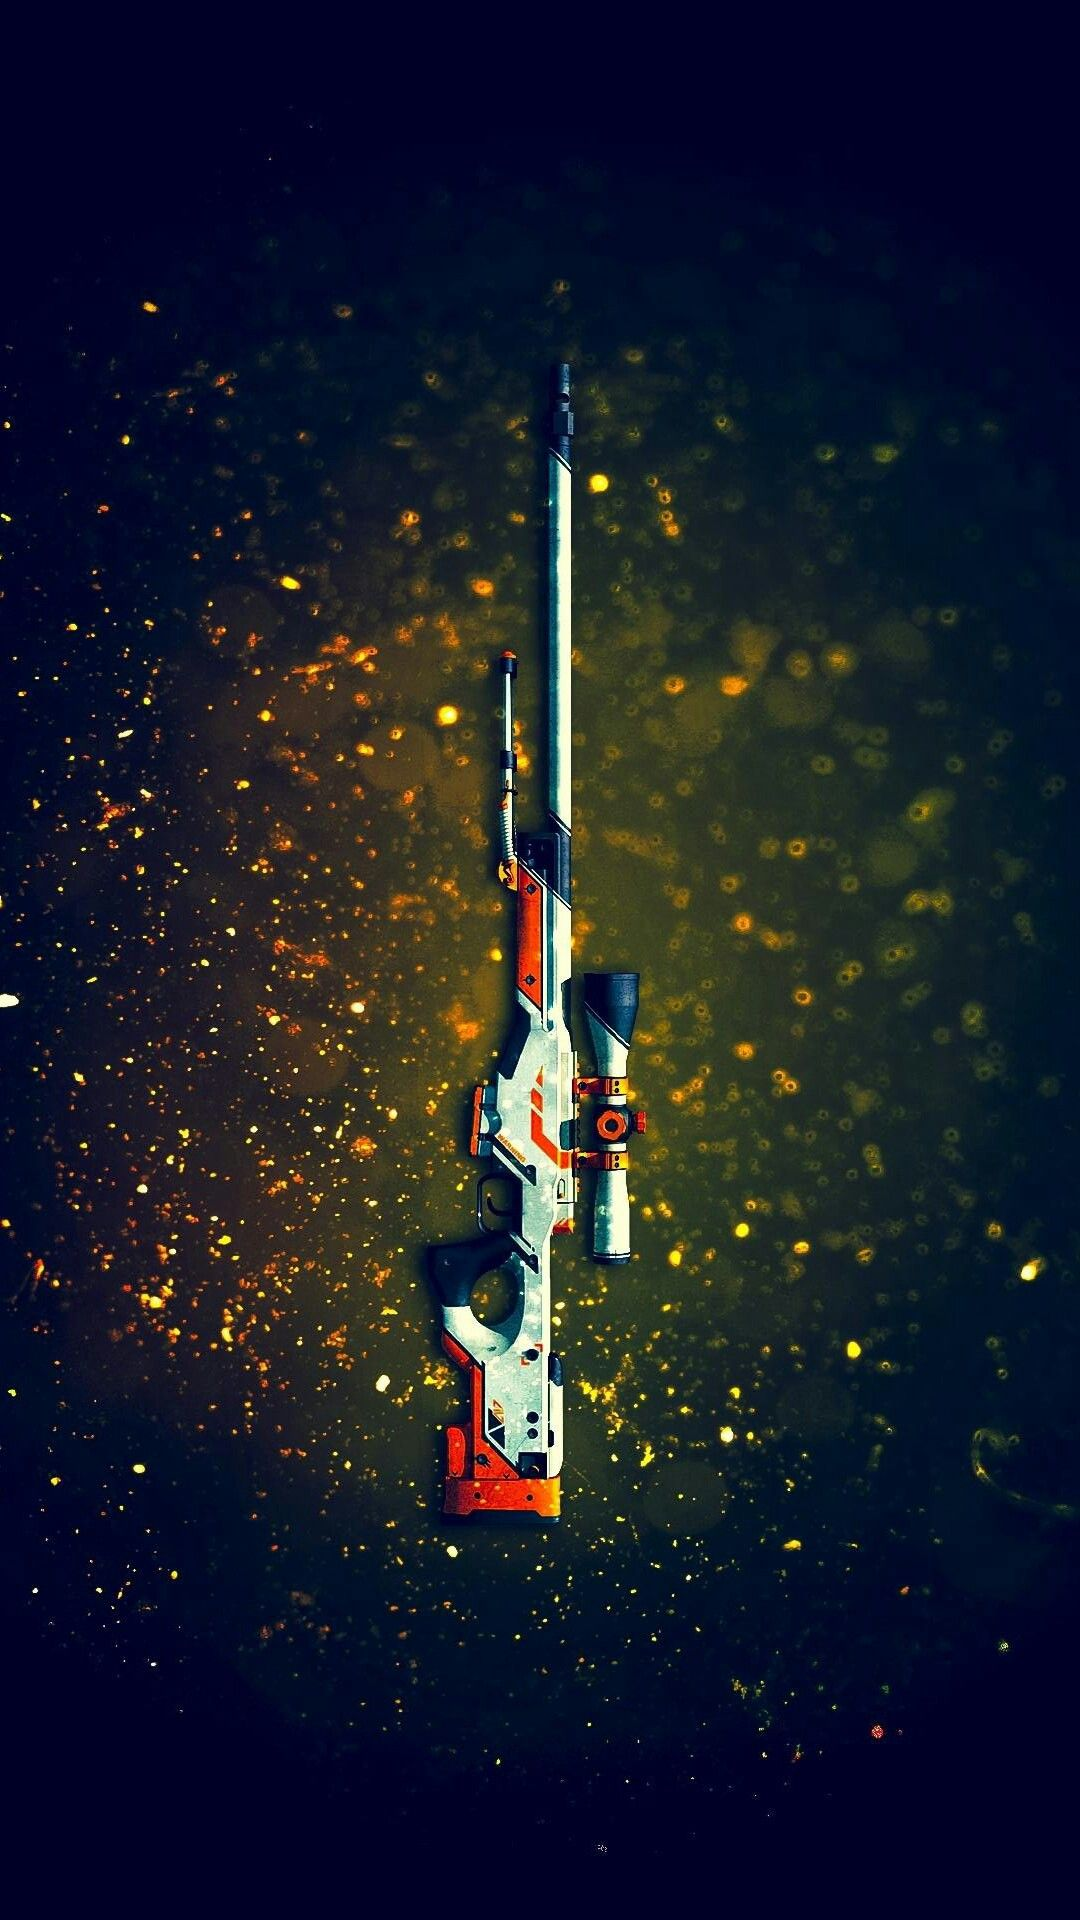 Pin by Helcar Aheleen on guns Mobile wallpaper, 480x800